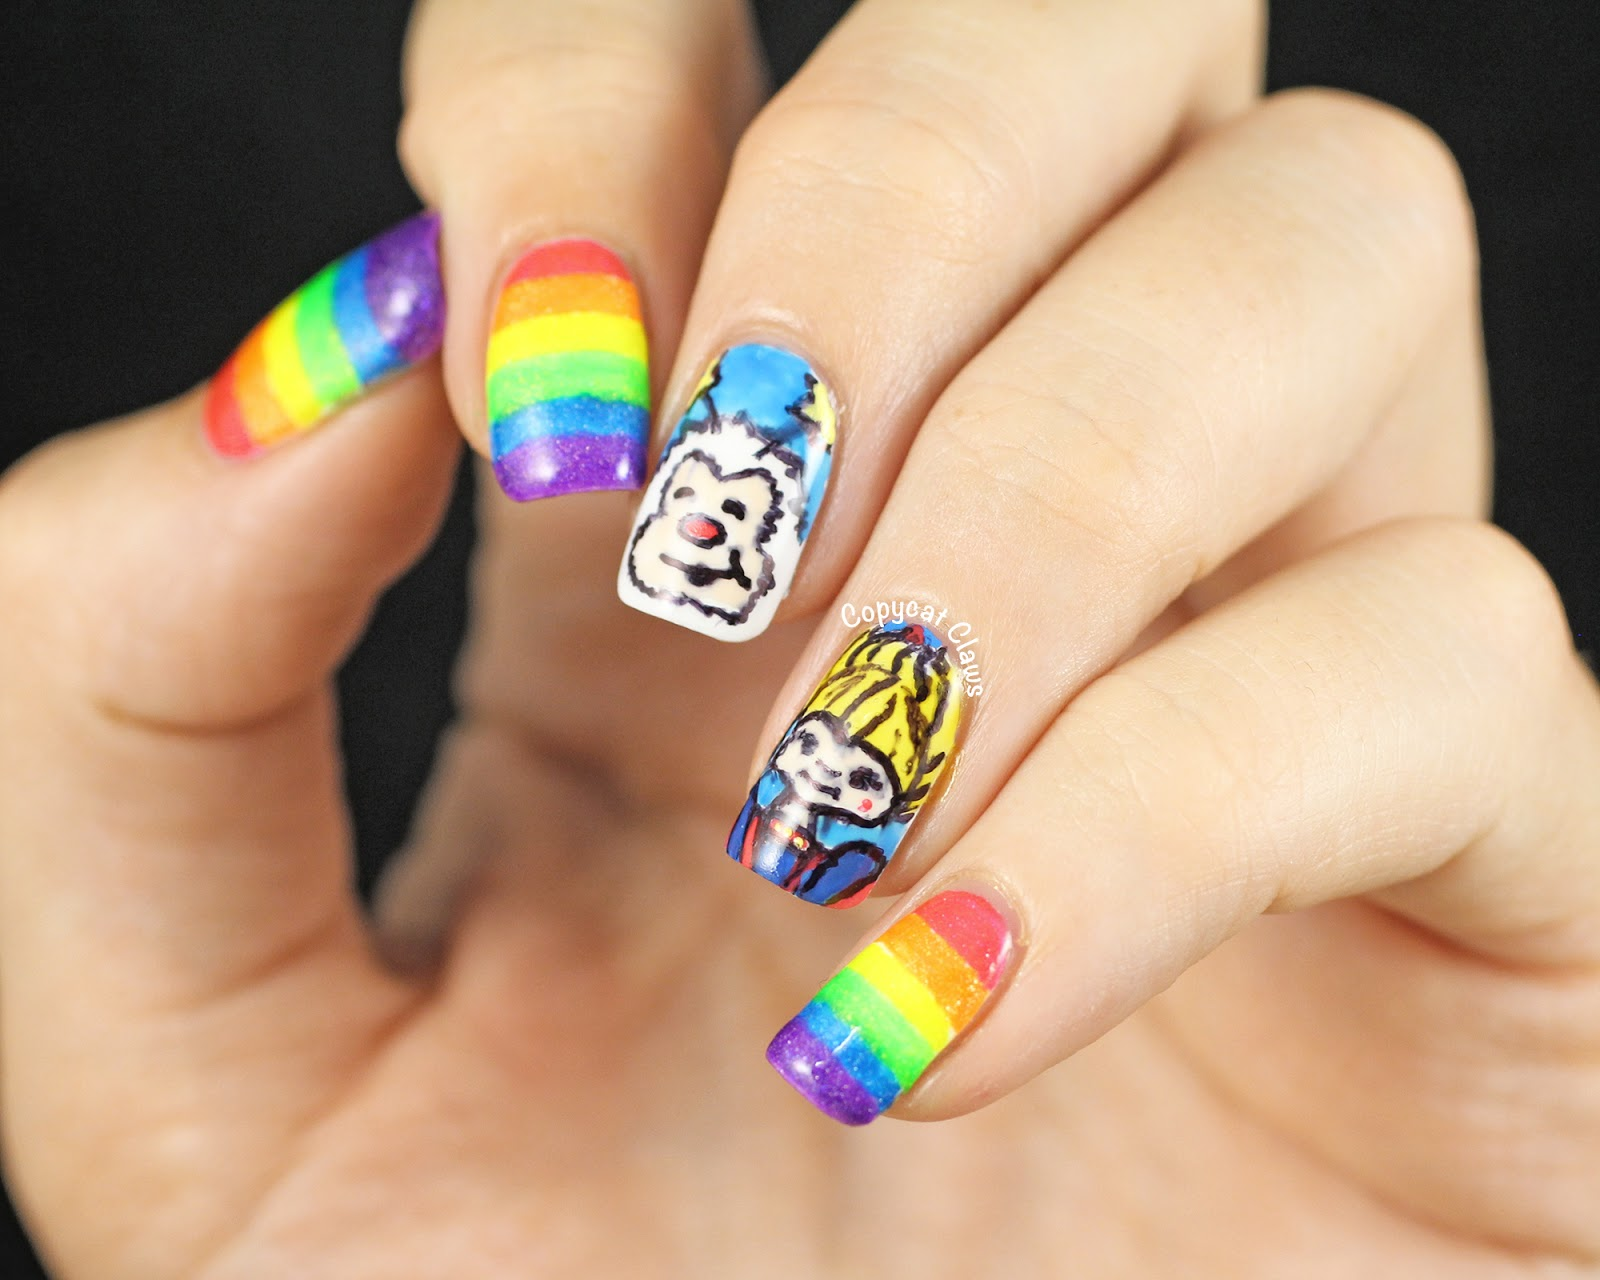 Copycat claws 31dc2014 day 9 rainbow brite nail art i topped it all with hk girl top coat and learnt why people dont use sharpies for their nail art the top coat did make my black lines bleed a bit prinsesfo Images